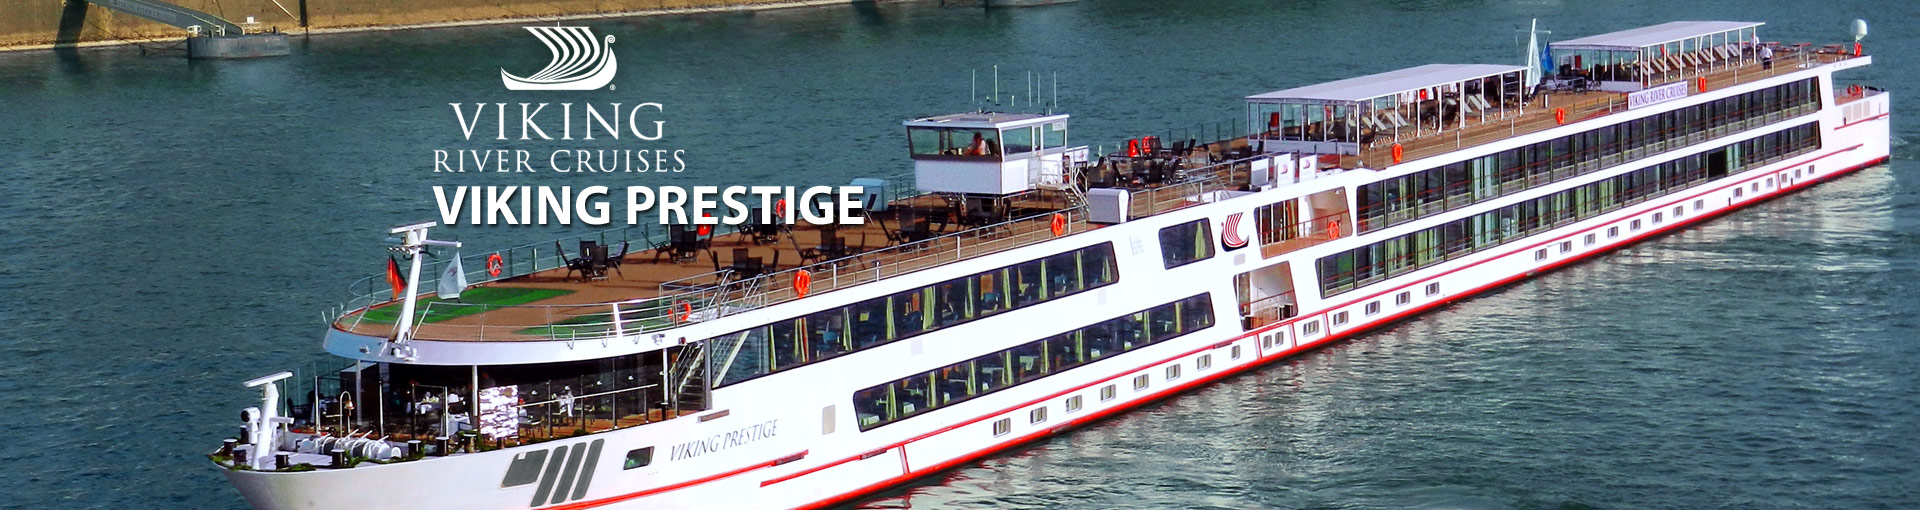 Viking Rivers Viking Prestige river cruise ship